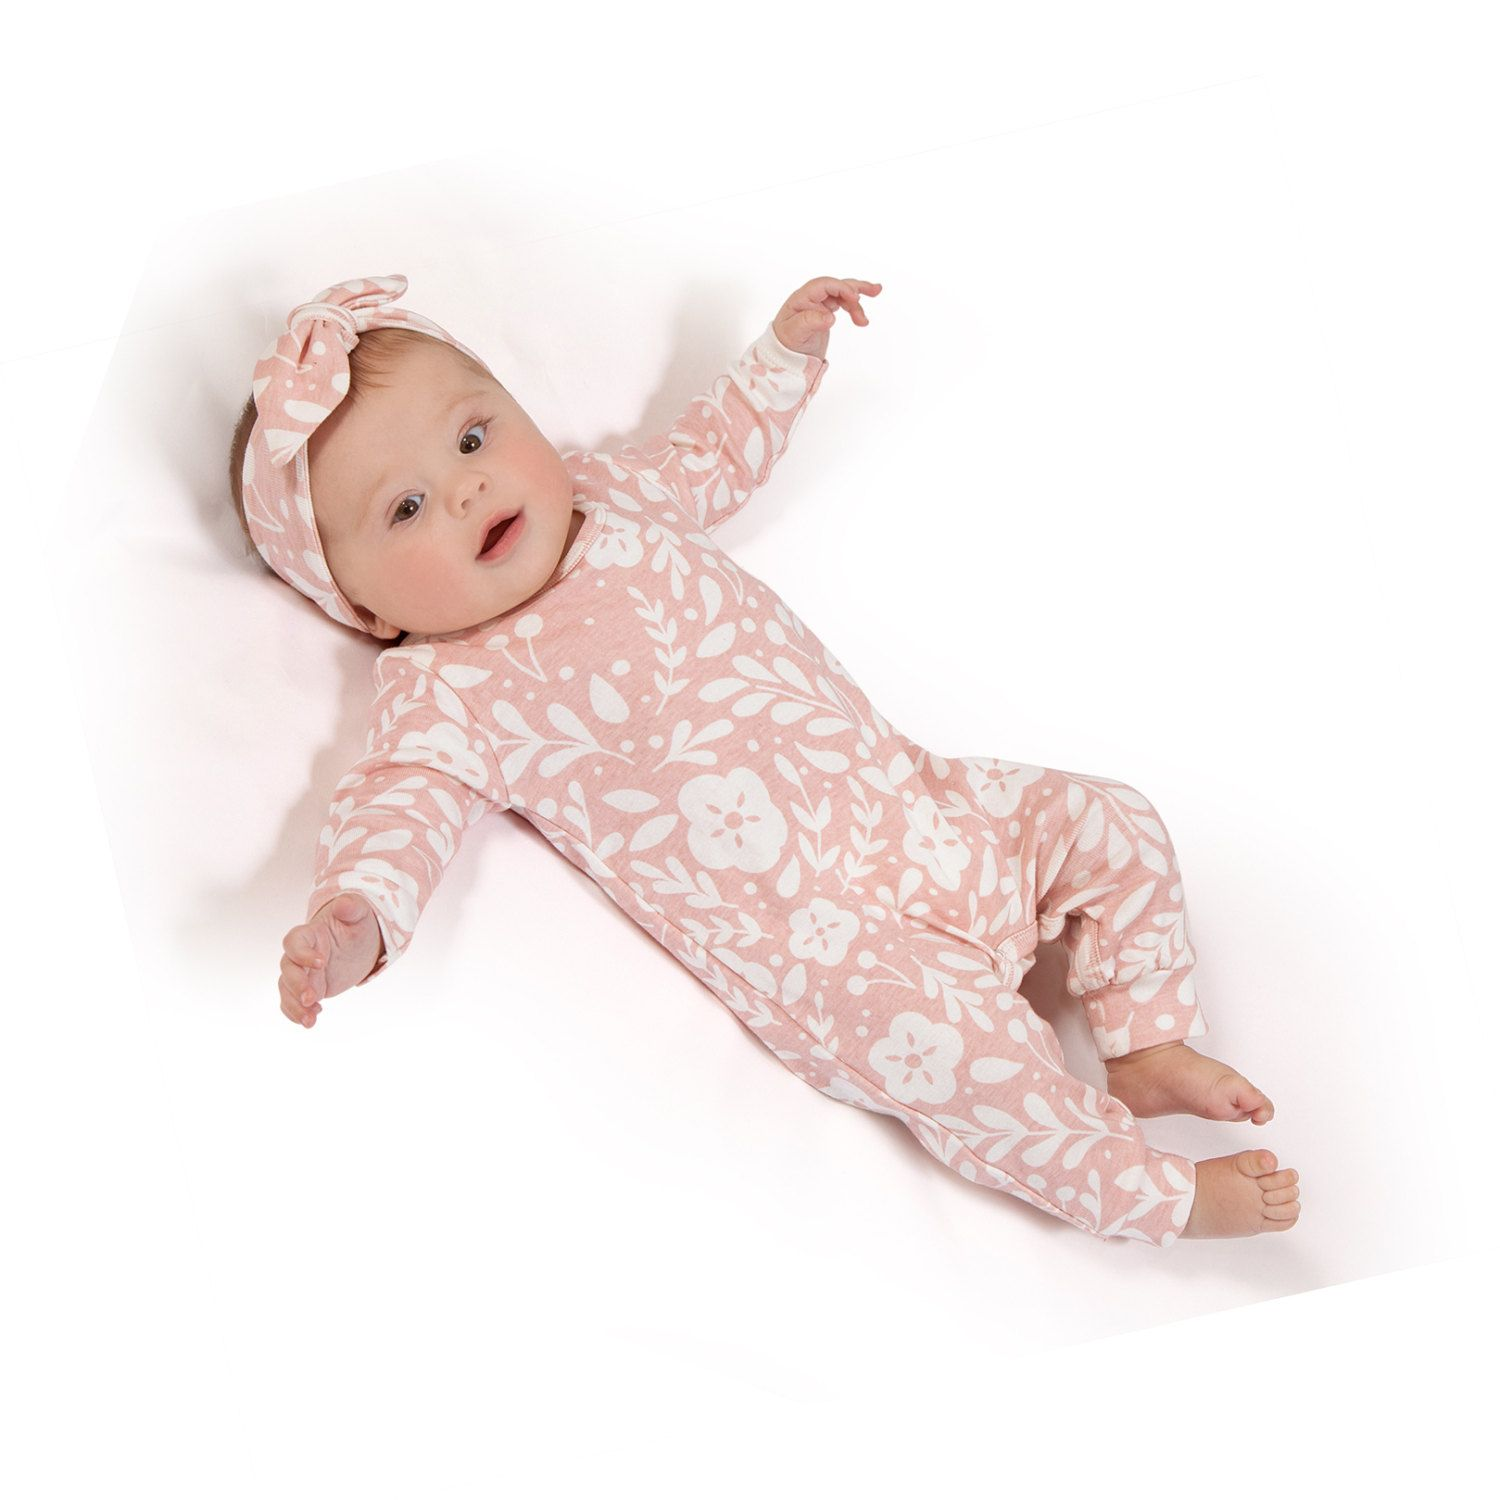 9f71a471a998 Newborn Girl Take Home Outfit. Baby Girl Romper   Optional Matching ...